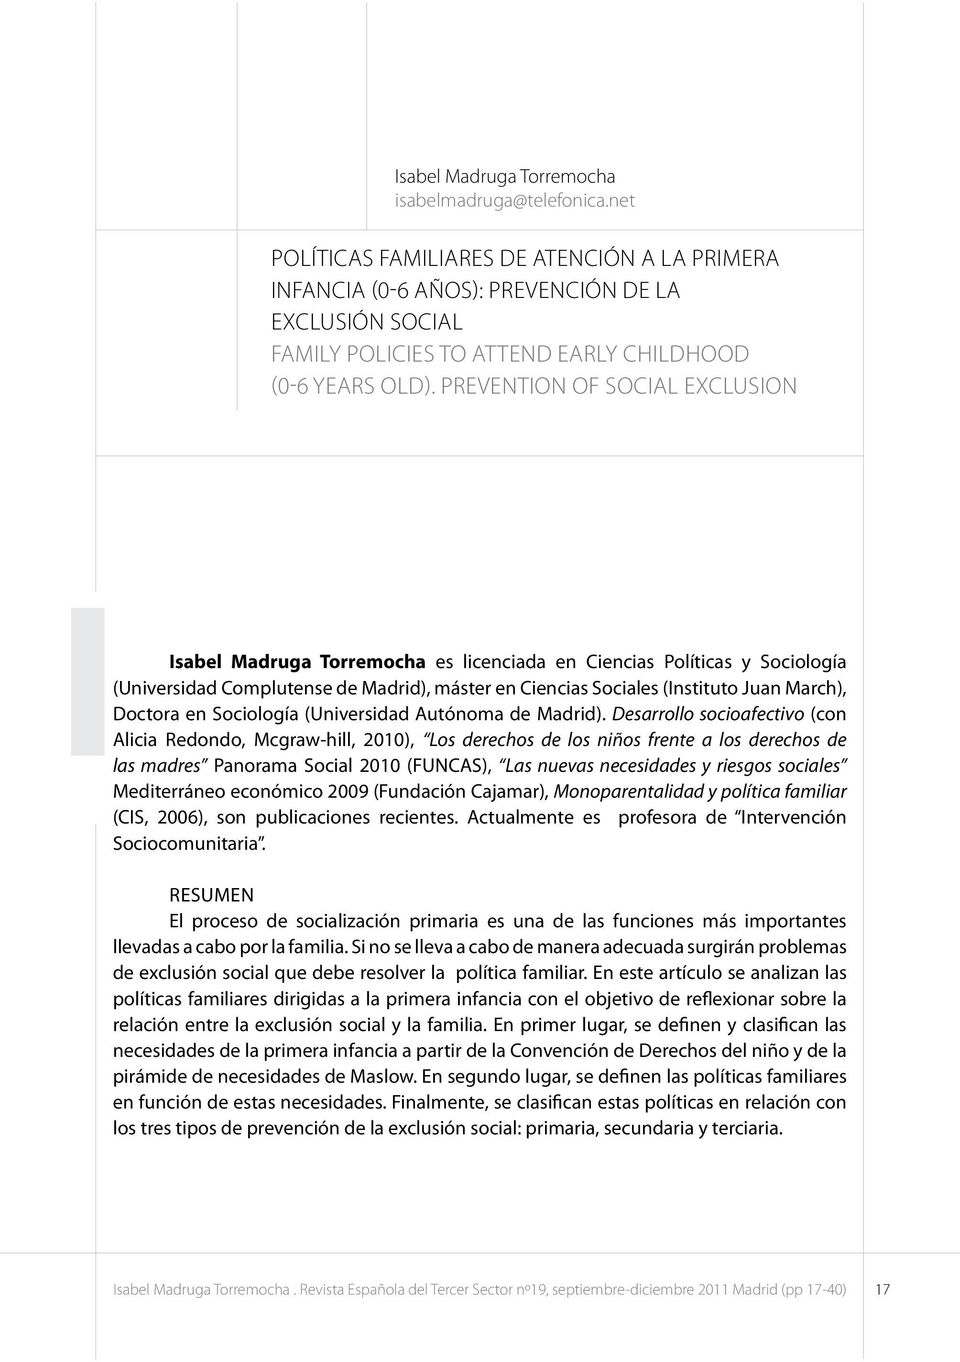 PREVENTION of Social EXCLUSION I Isabel Madruga Torremocha es licenciada en Ciencias Políticas y Sociología (Universidad Complutense de Madrid), máster en Ciencias Sociales (Instituto Juan March),